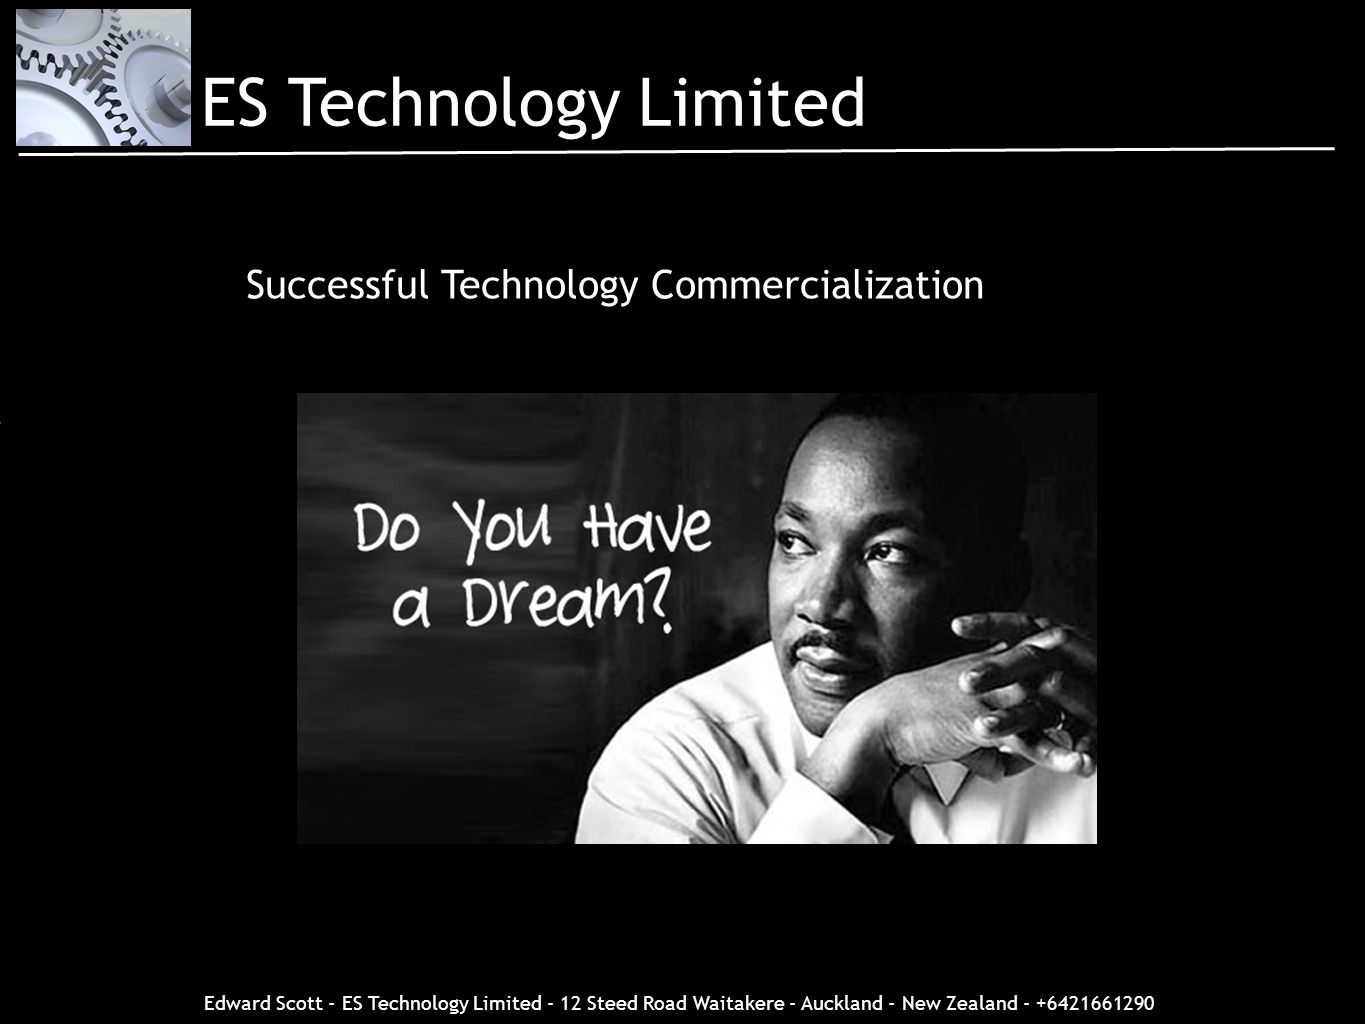 Successful Technology Commercialization